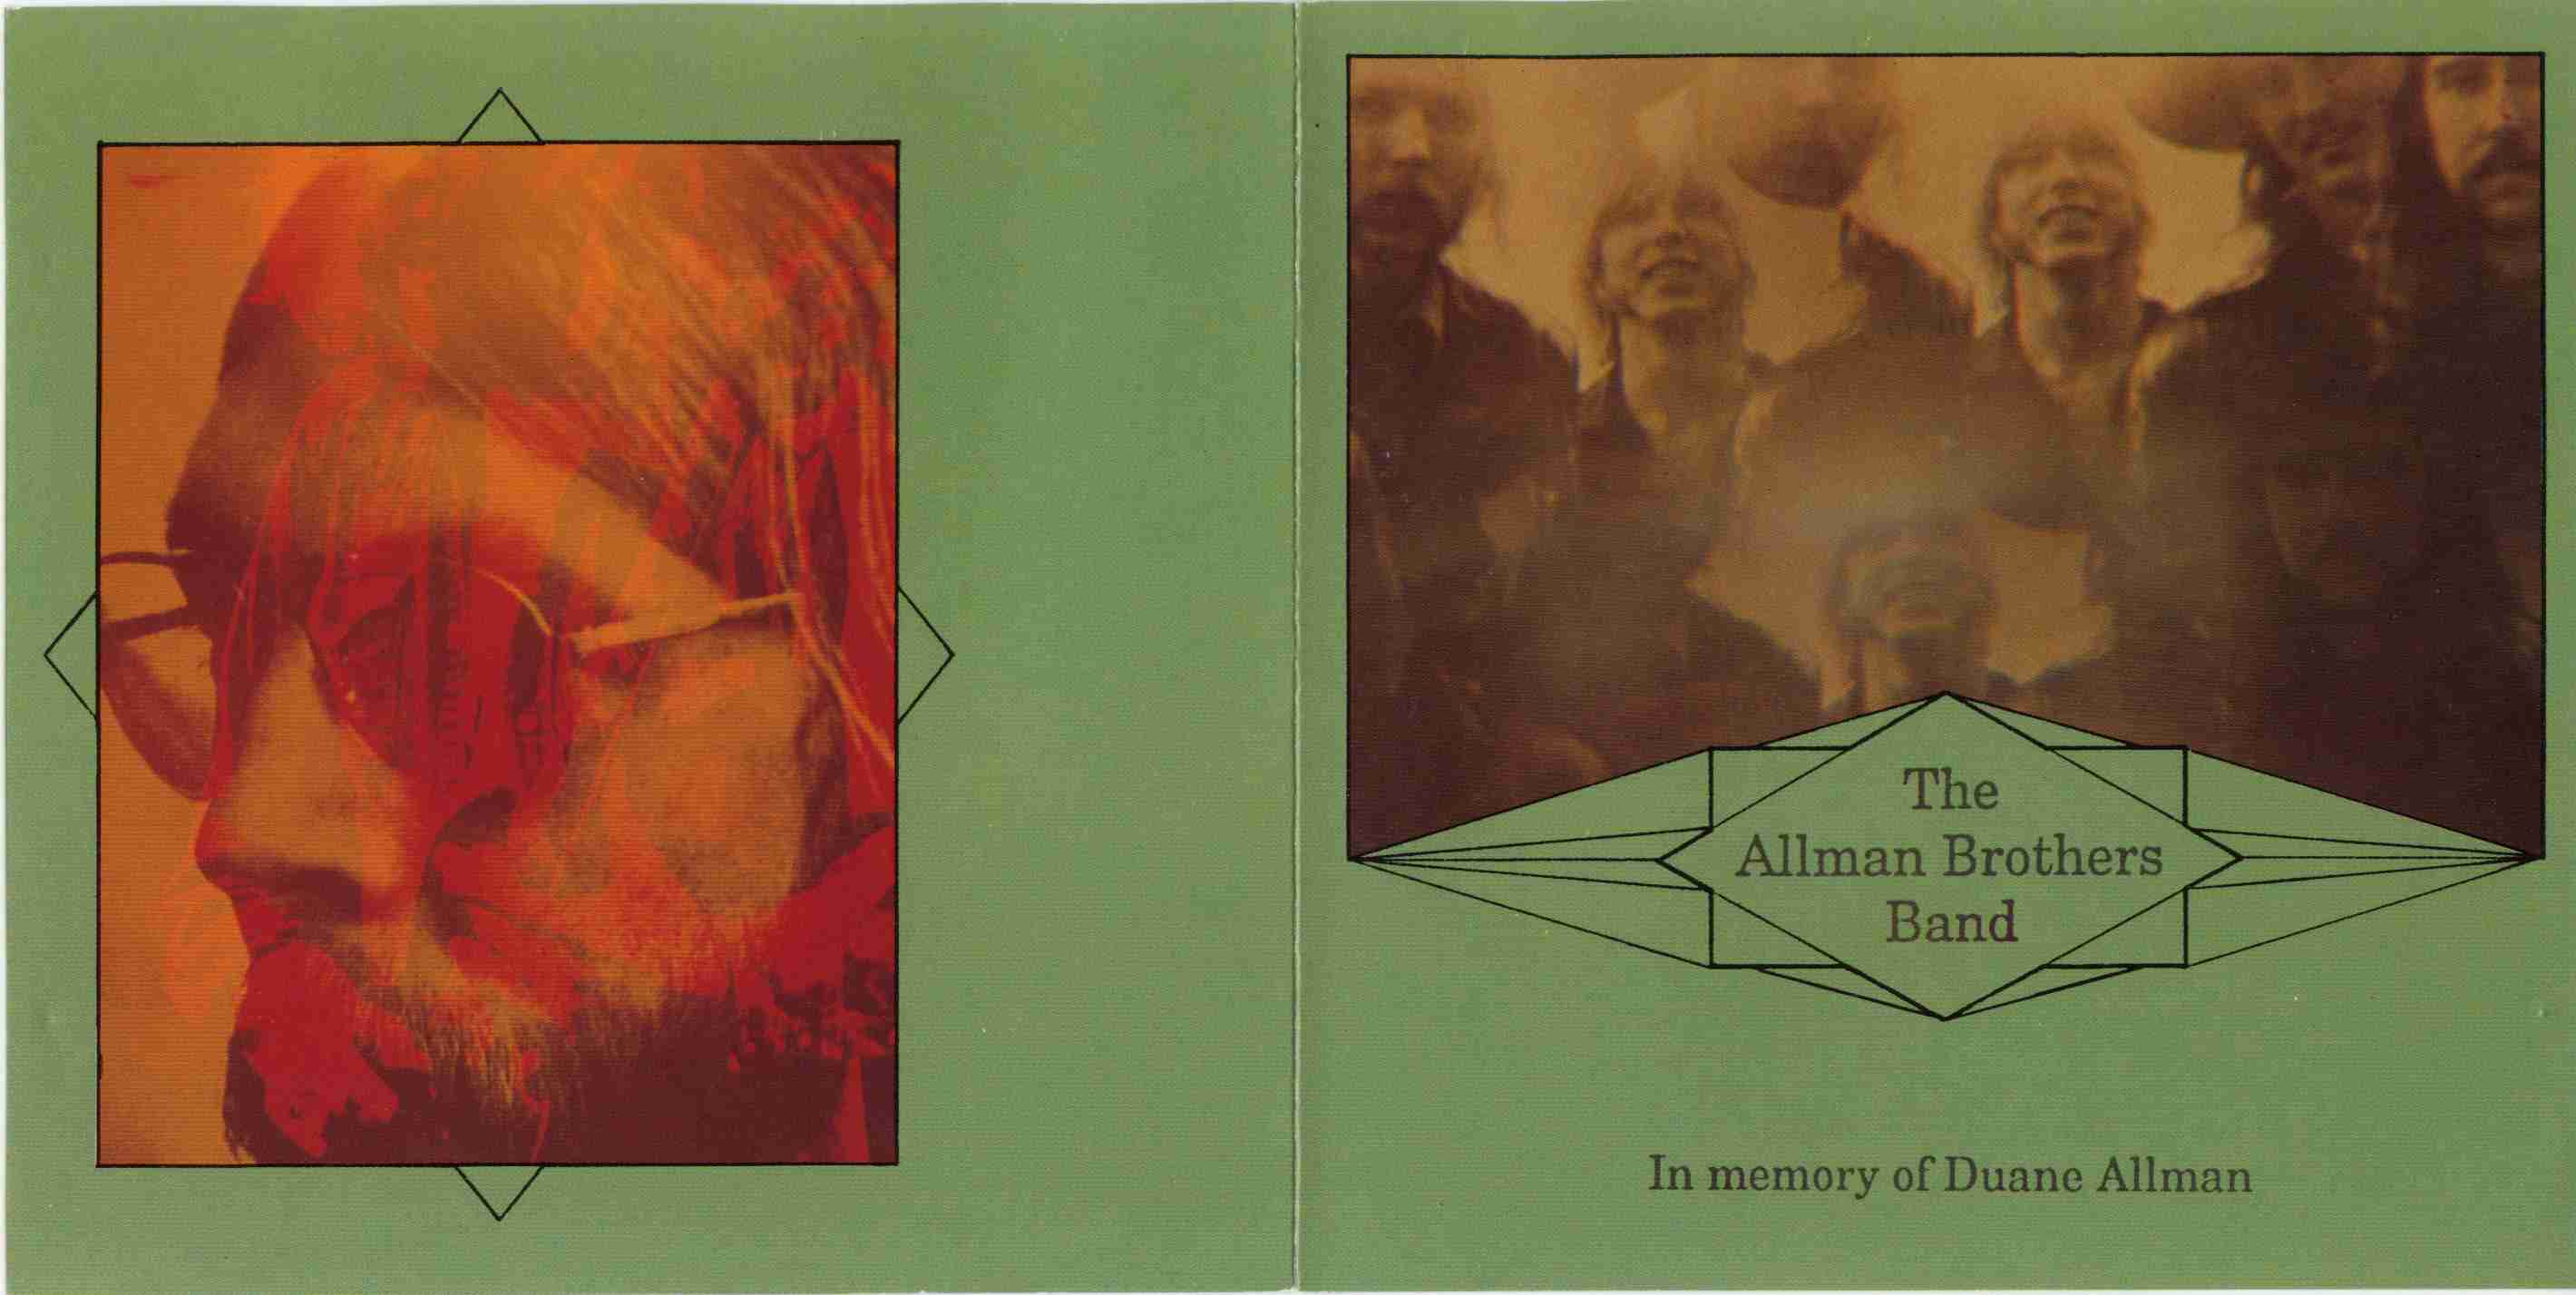 1971-06-26-In_memory_of_Duane_Allman-front